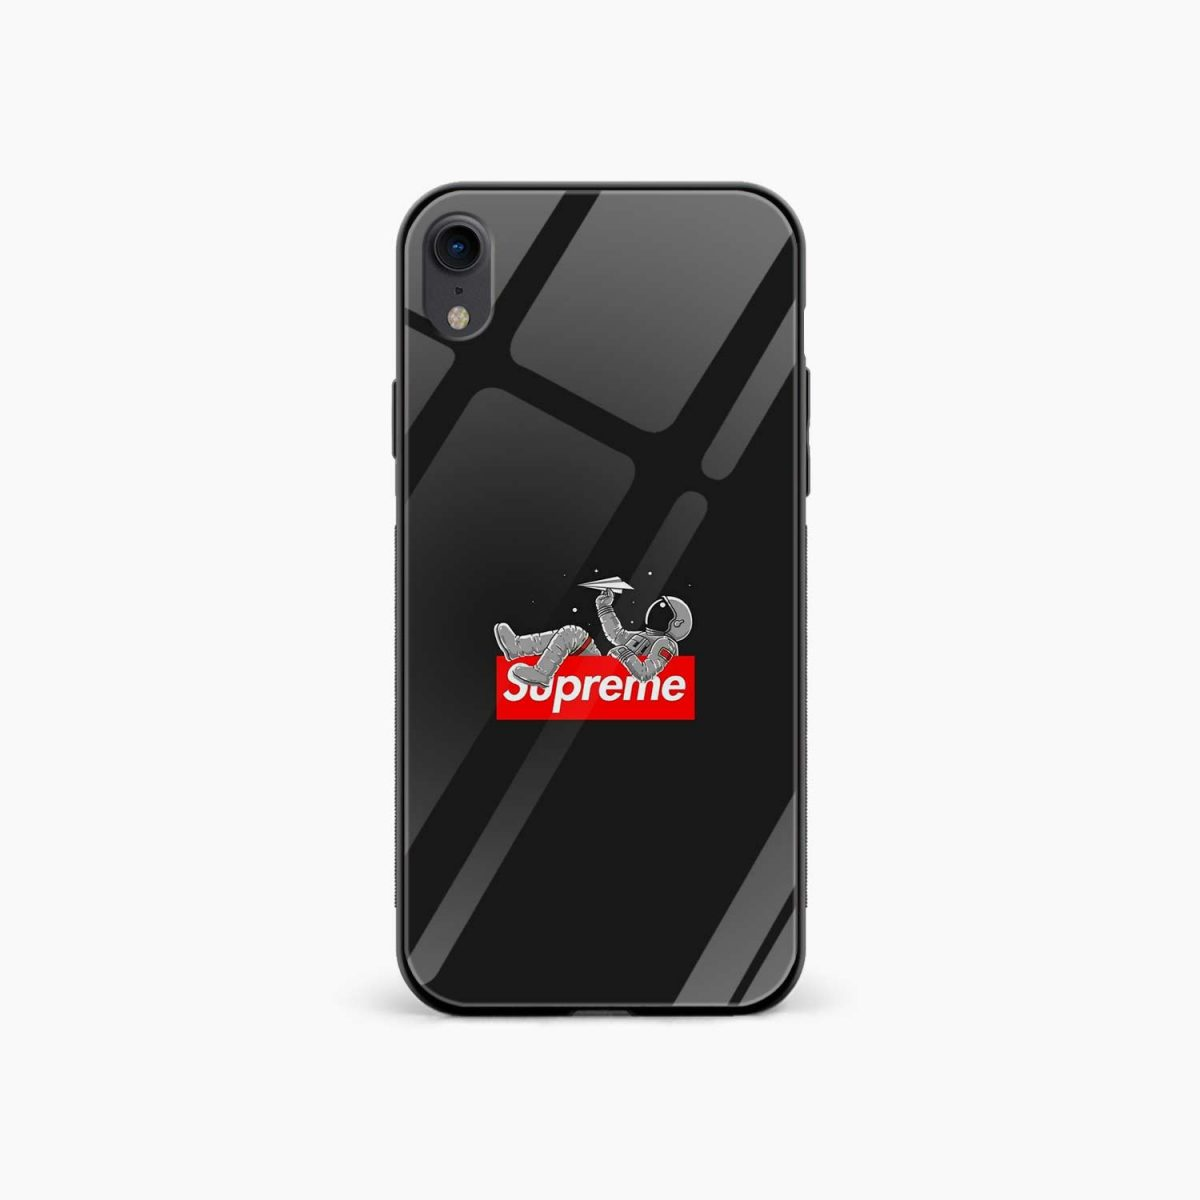 supreme astronaut apple iphone xr back cover front view